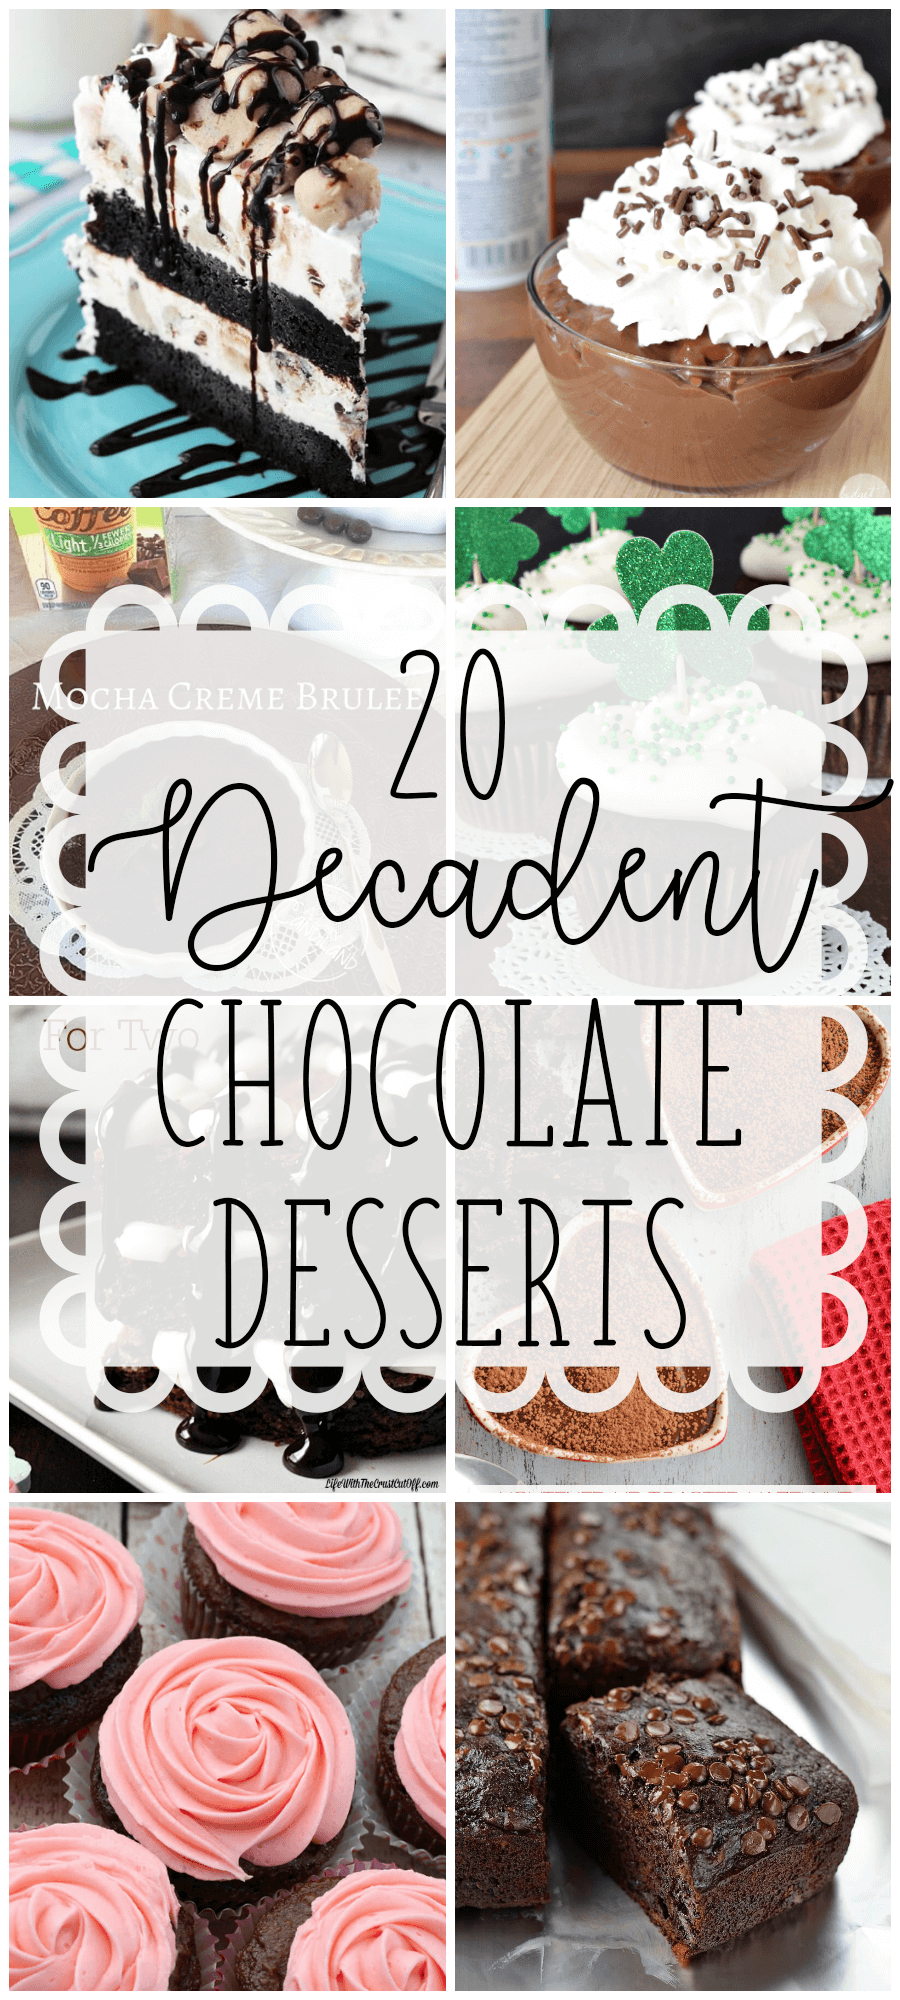 If you're looking for a chocolate dessert, but aren't sure what, stop looking. Here are 20 decadent chocolate desserts, varying in type and ease, that should hit the spot.